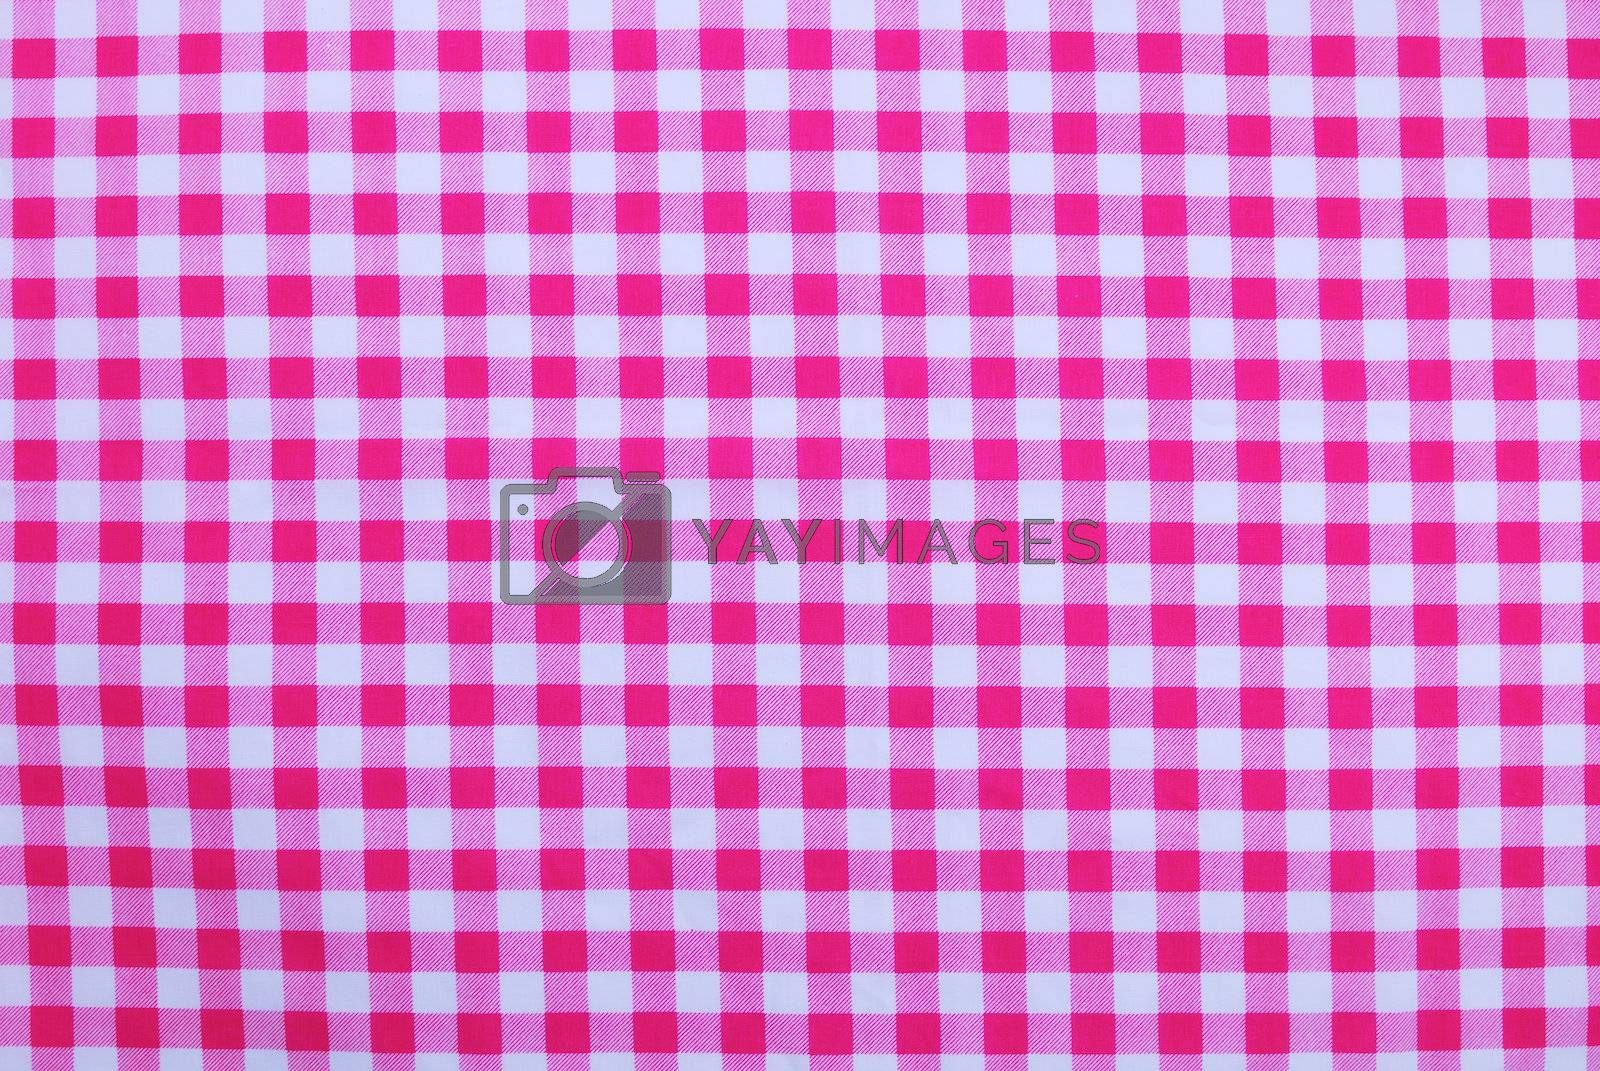 Royalty free image of Pink checkered tablecloth texture  by teen00000